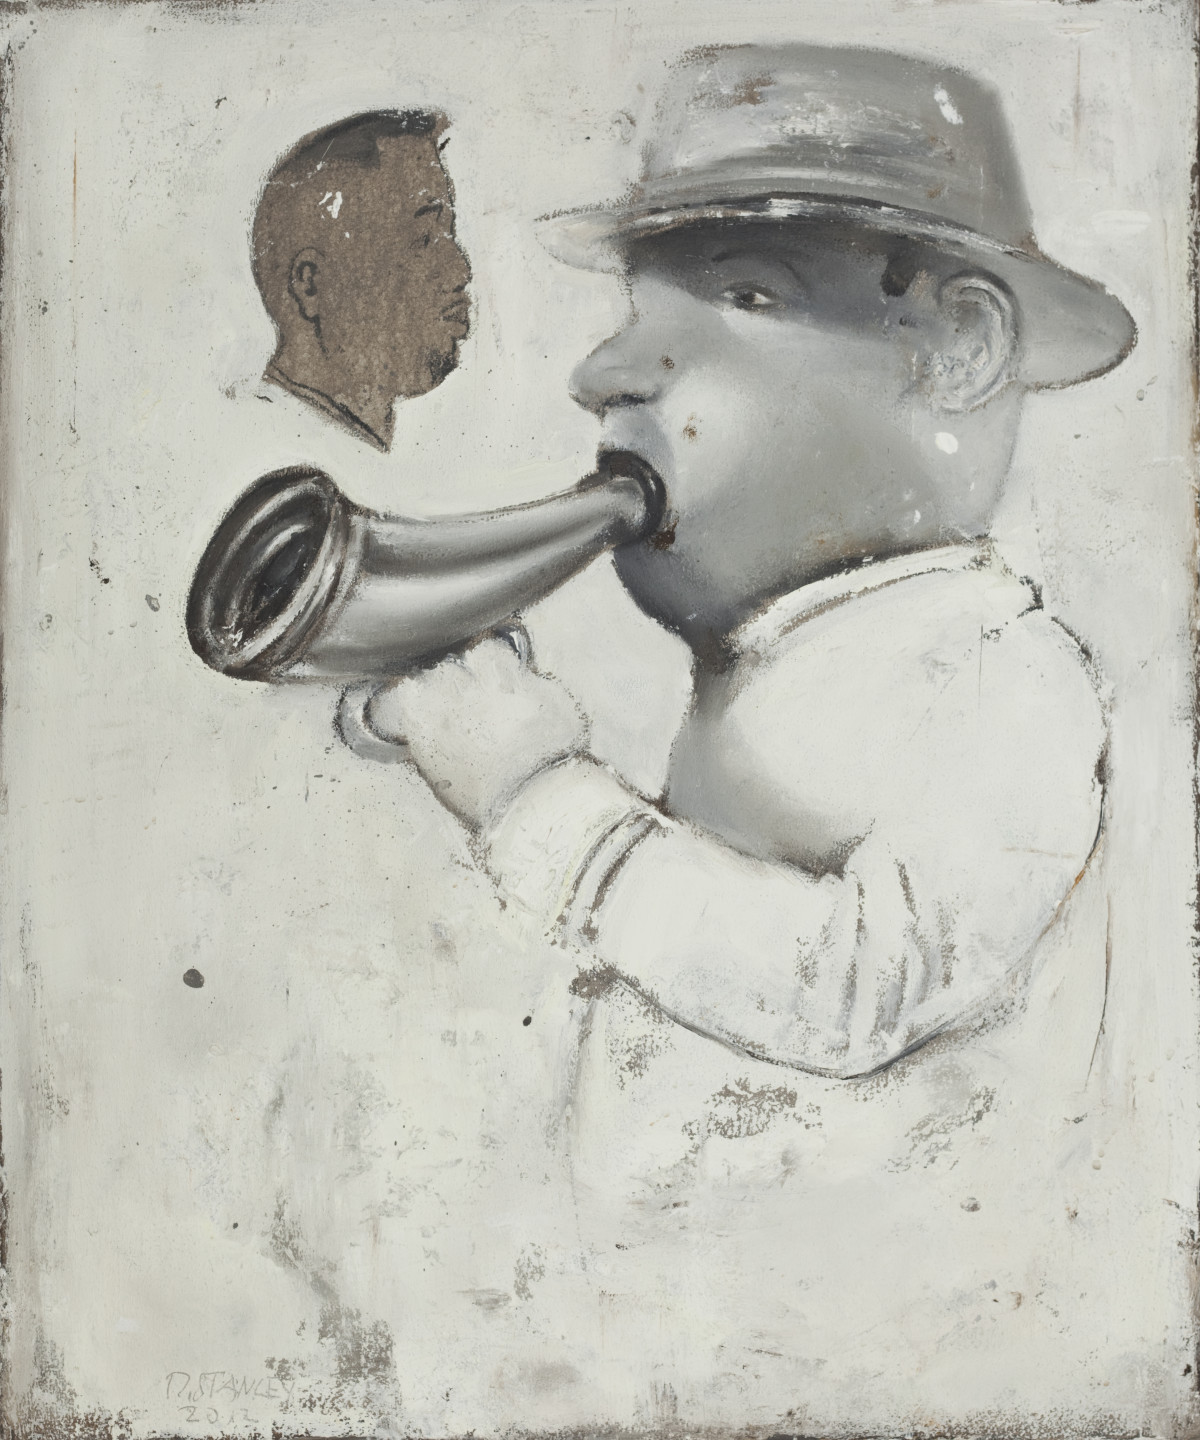 Ransome Stanley, TRUMPET, 2012